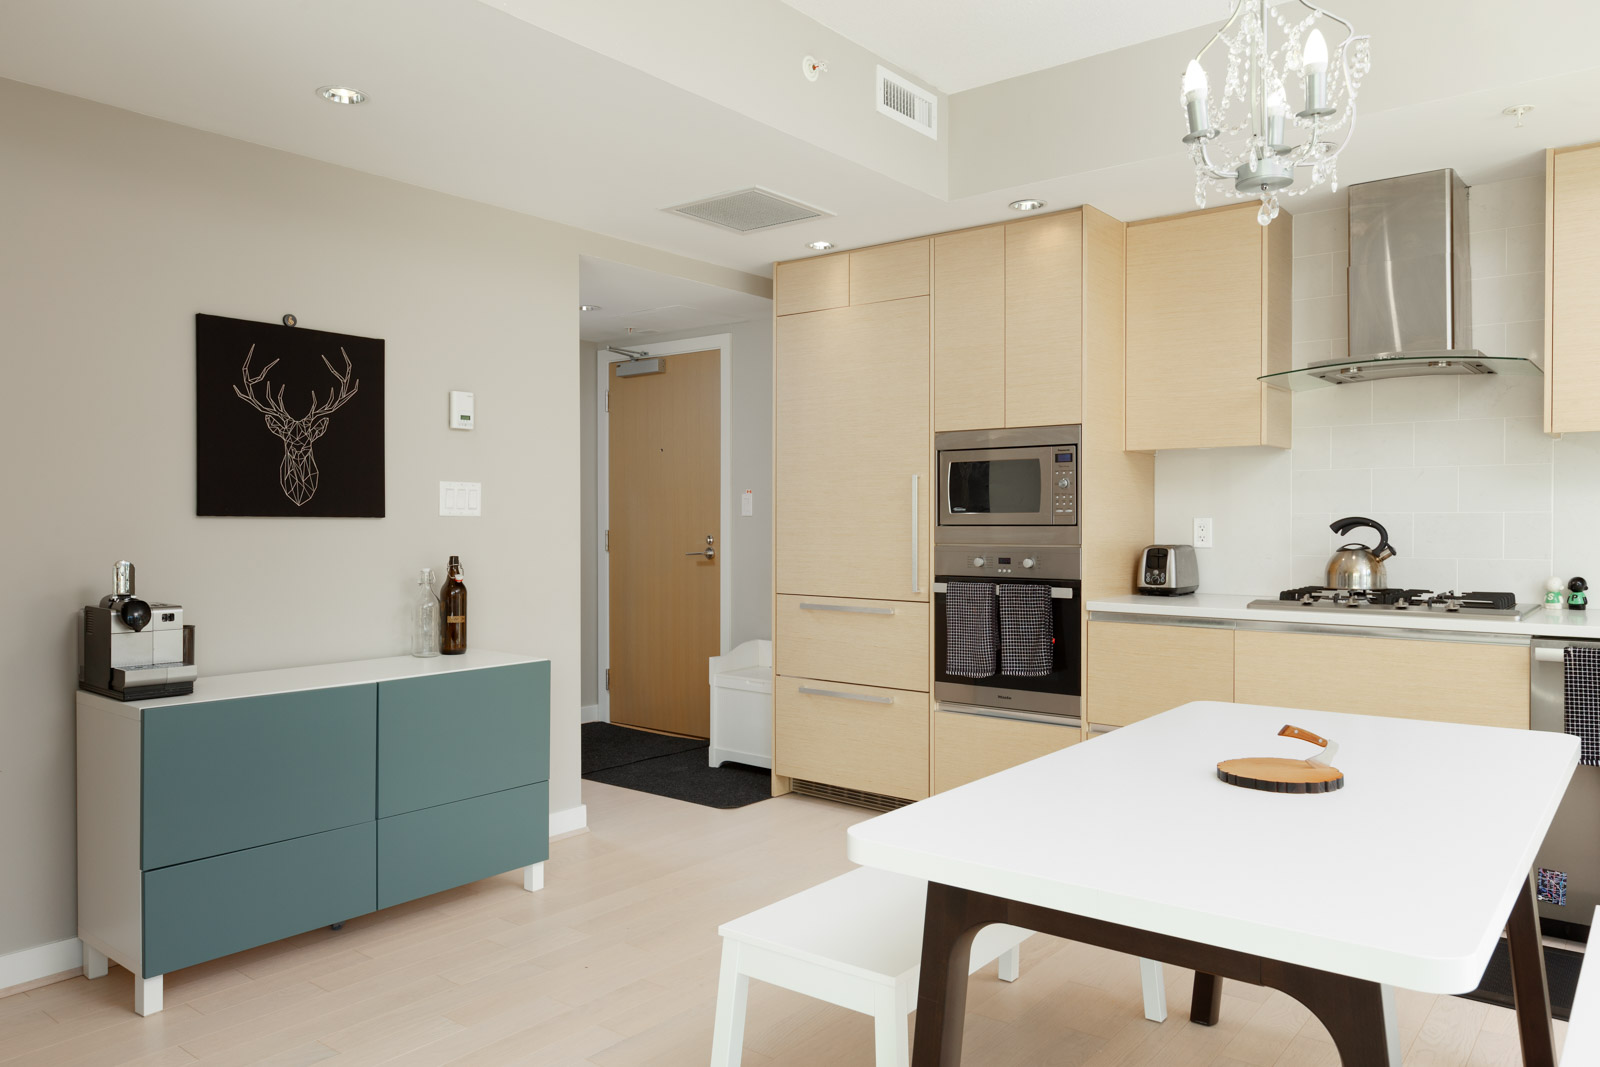 Kitchen and dining area of Vancouver condo rental.